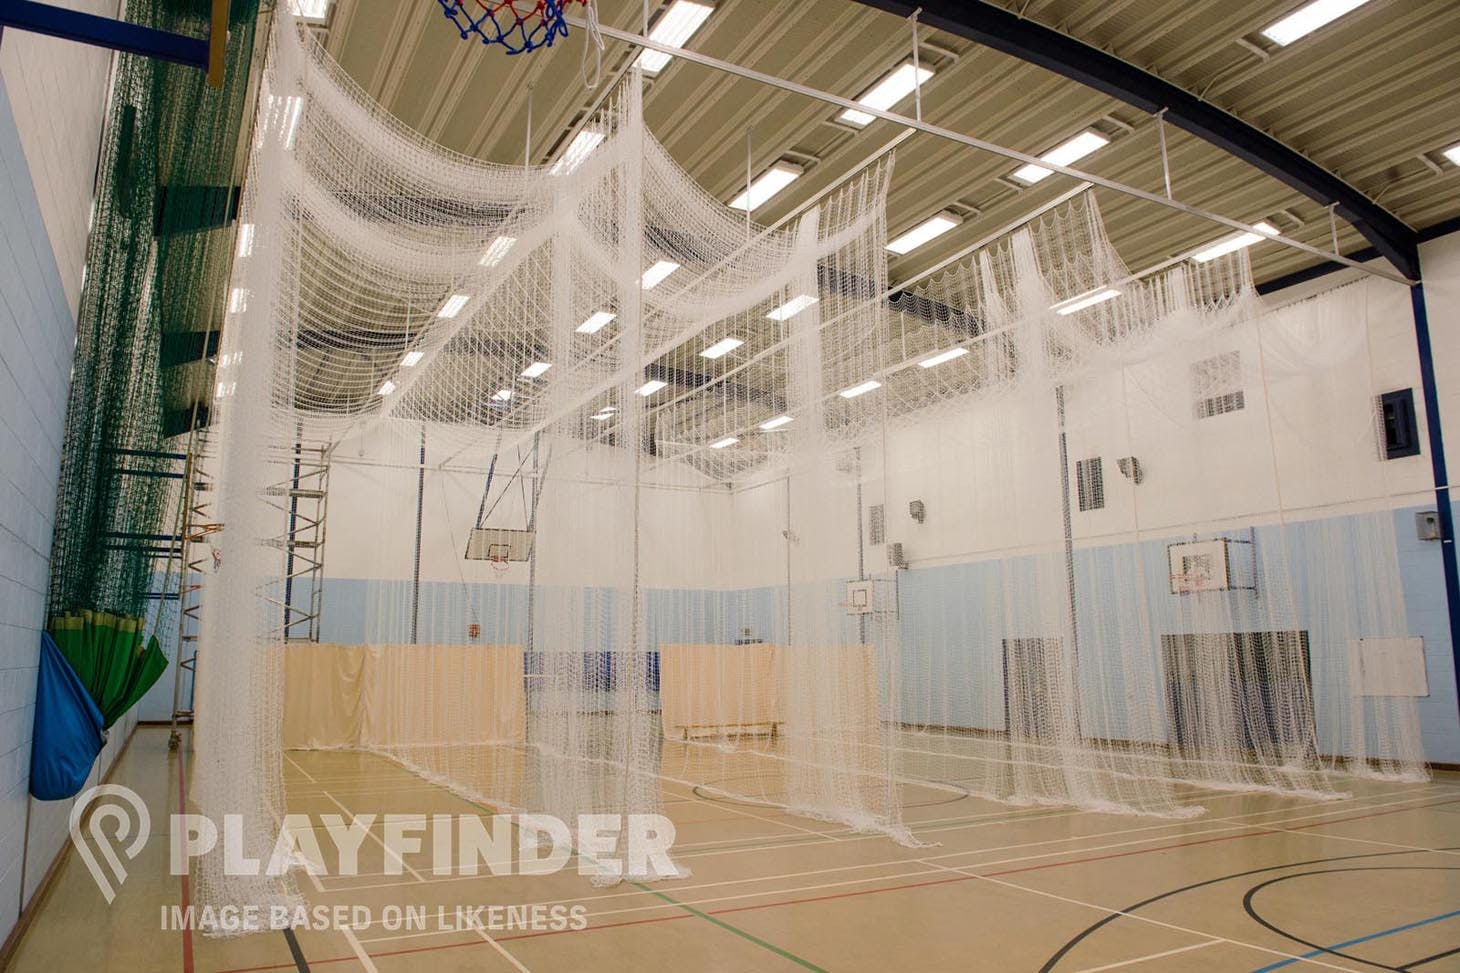 Sydney Russell Leisure Centre Nets | Sports hall cricket facilities